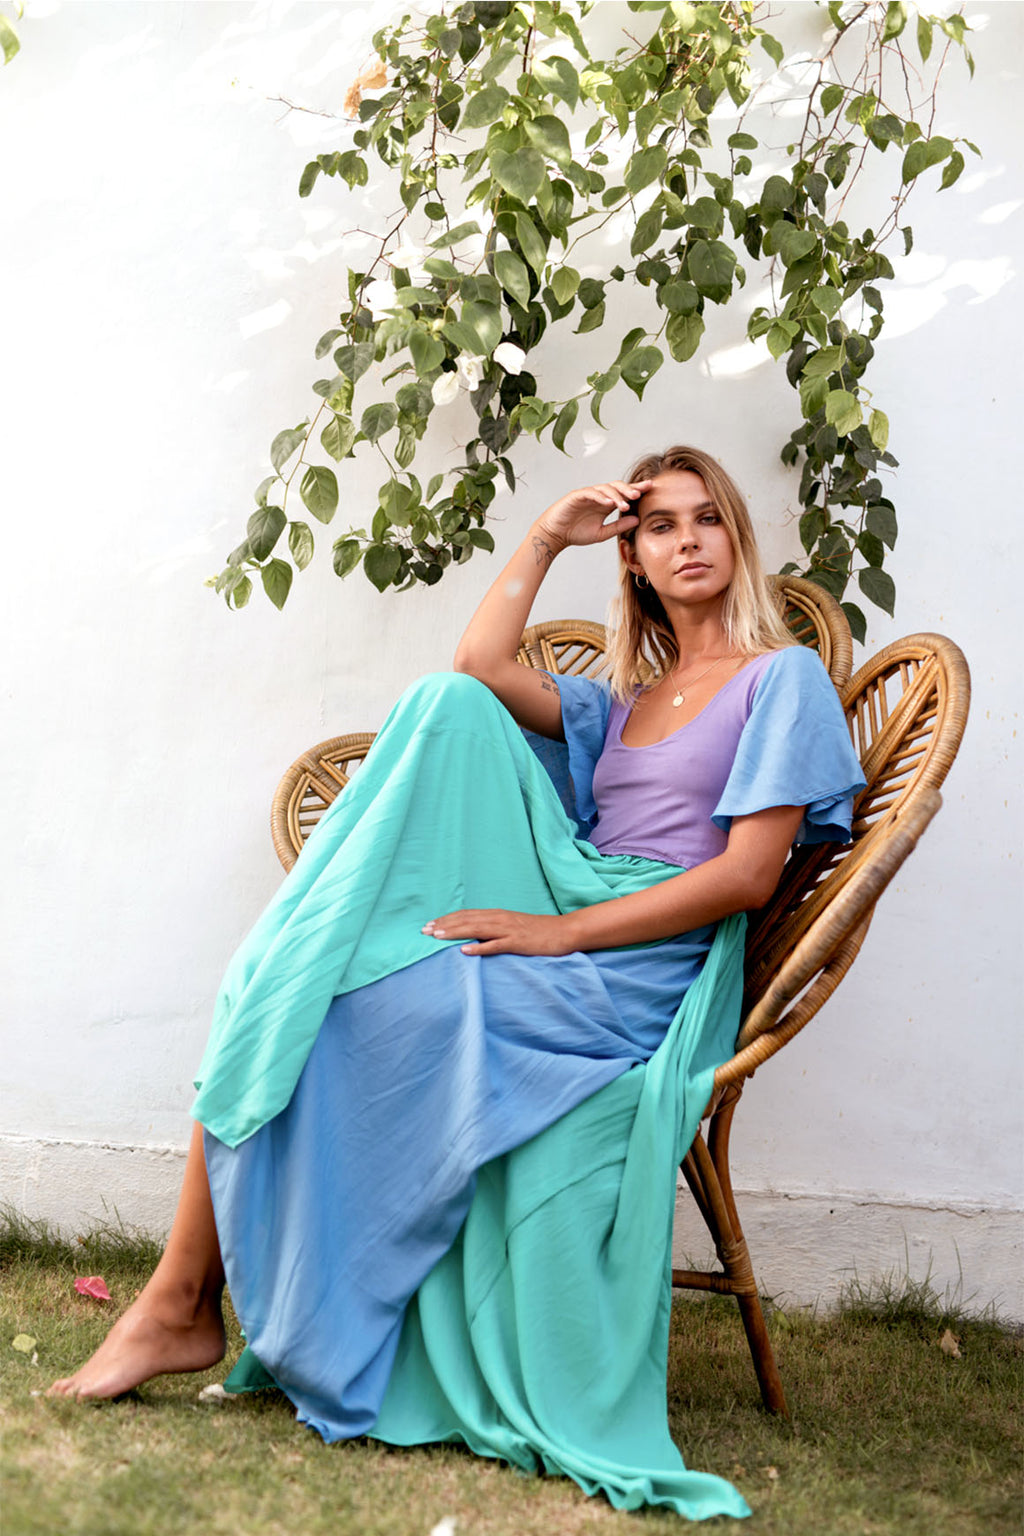 Goddess Dress Turquoise, purple, pale blue floaty bohemian